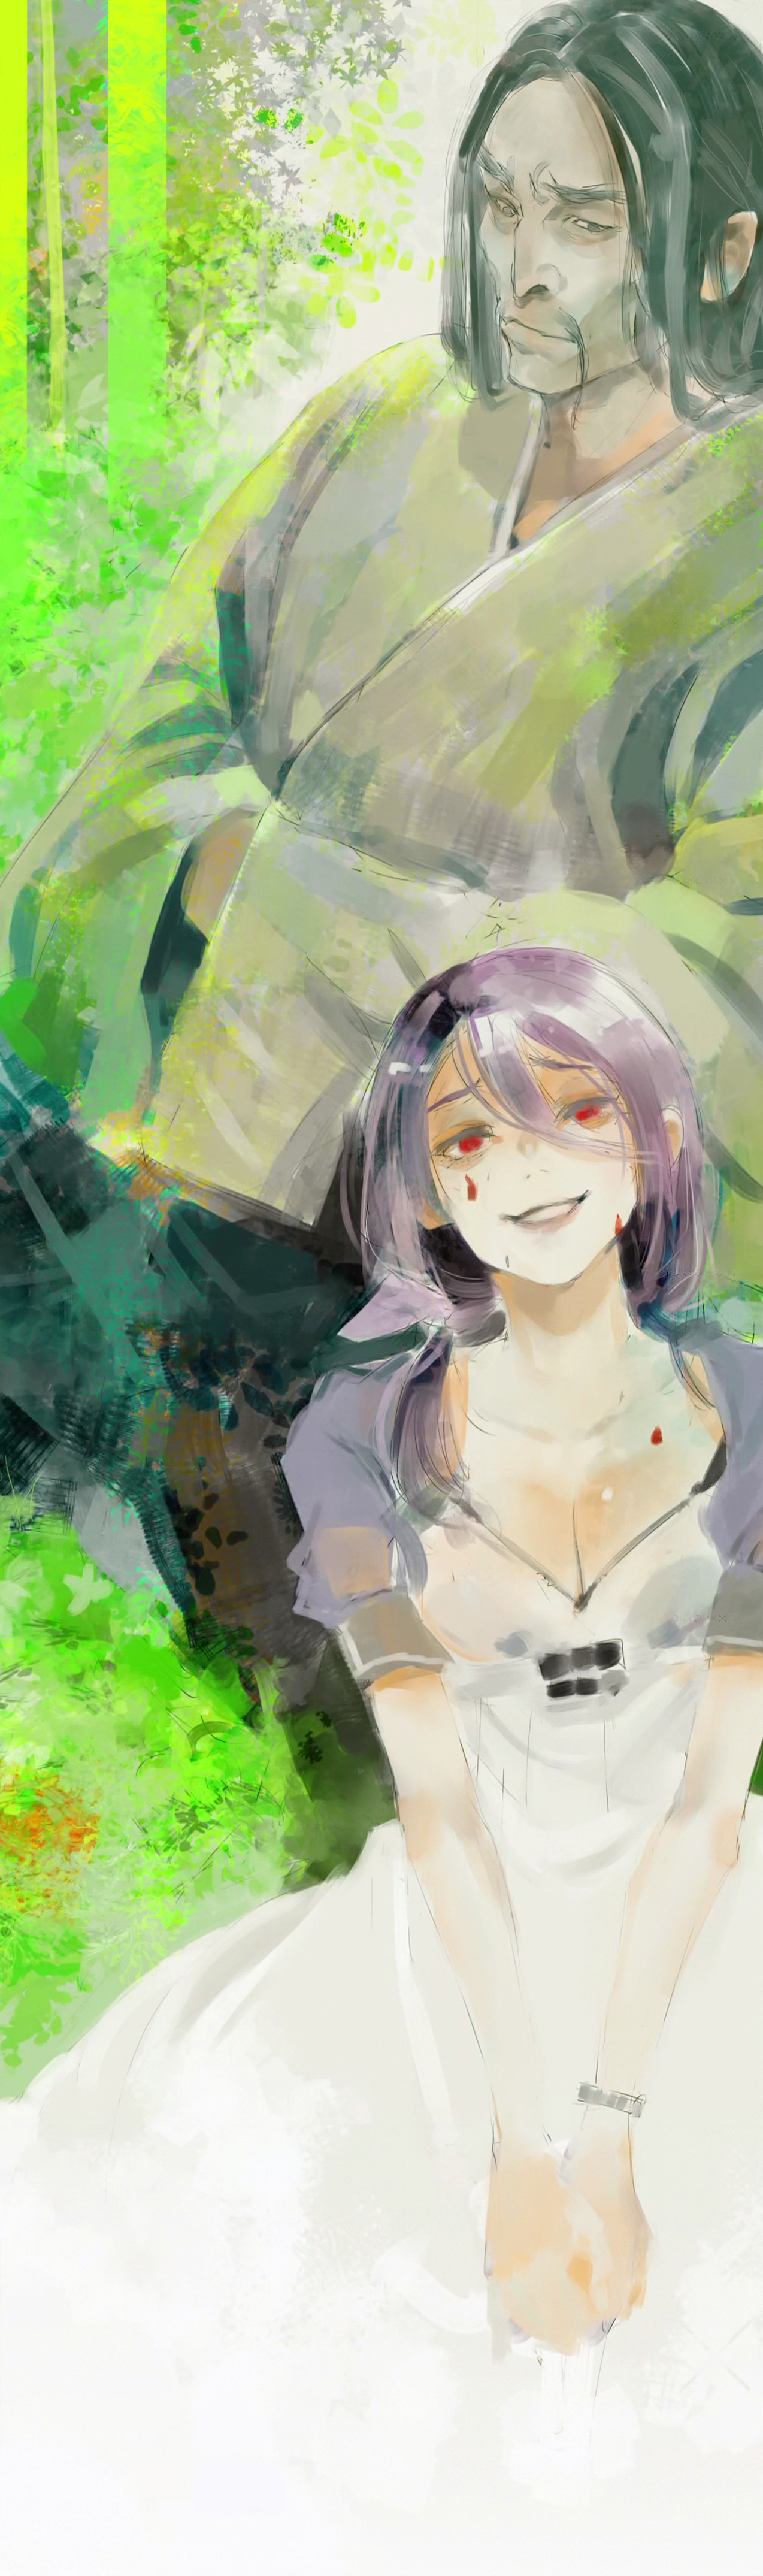 Tokyo Ghoul A Ending 5 東京喰種 石田スイ イラスト イラスト